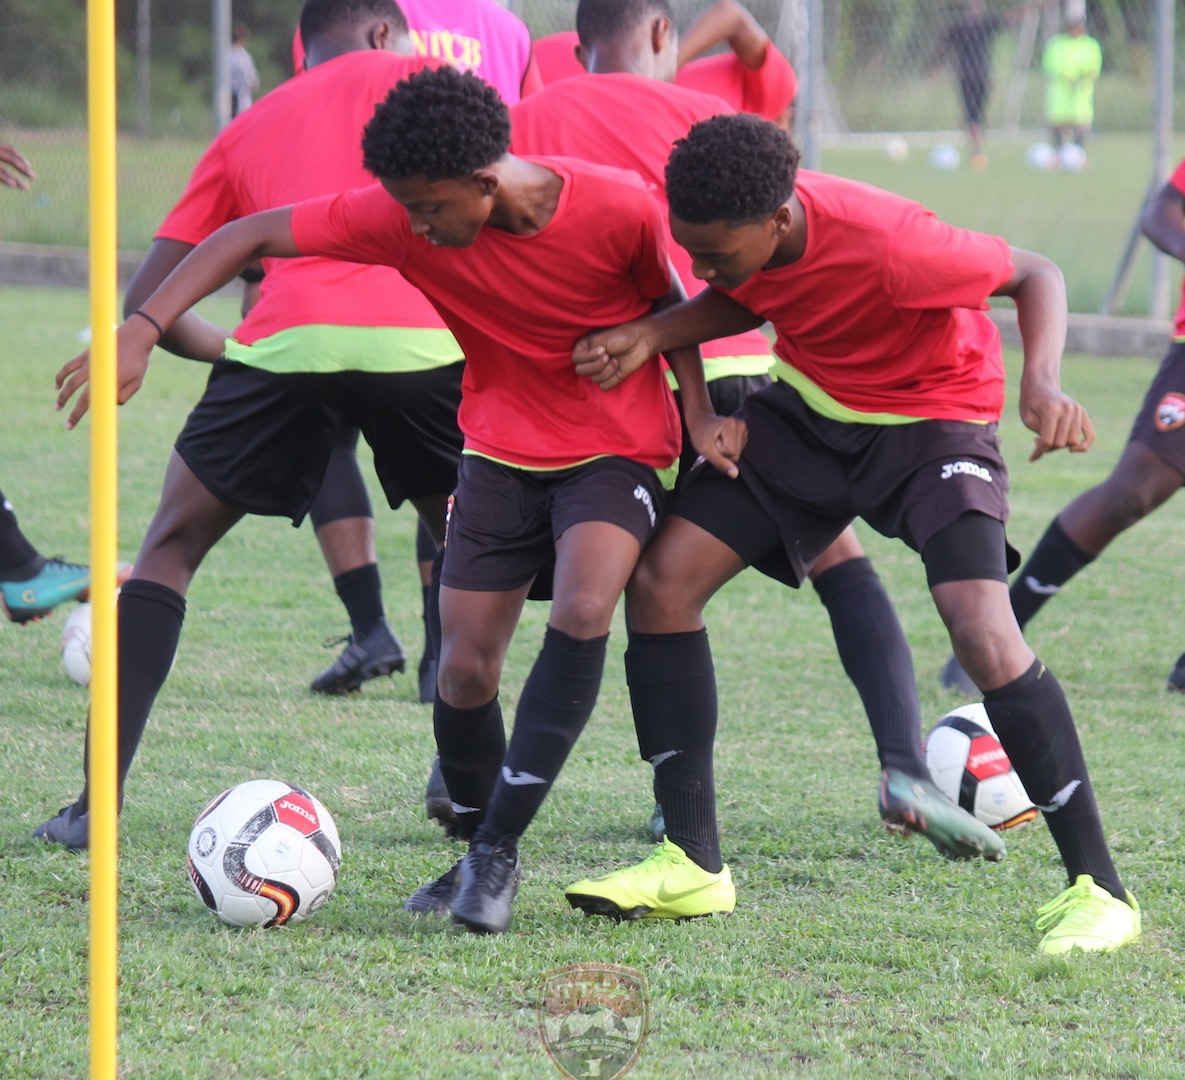 T&T to face Costa Rica in CONCACAF U-15 opener tomorrow.